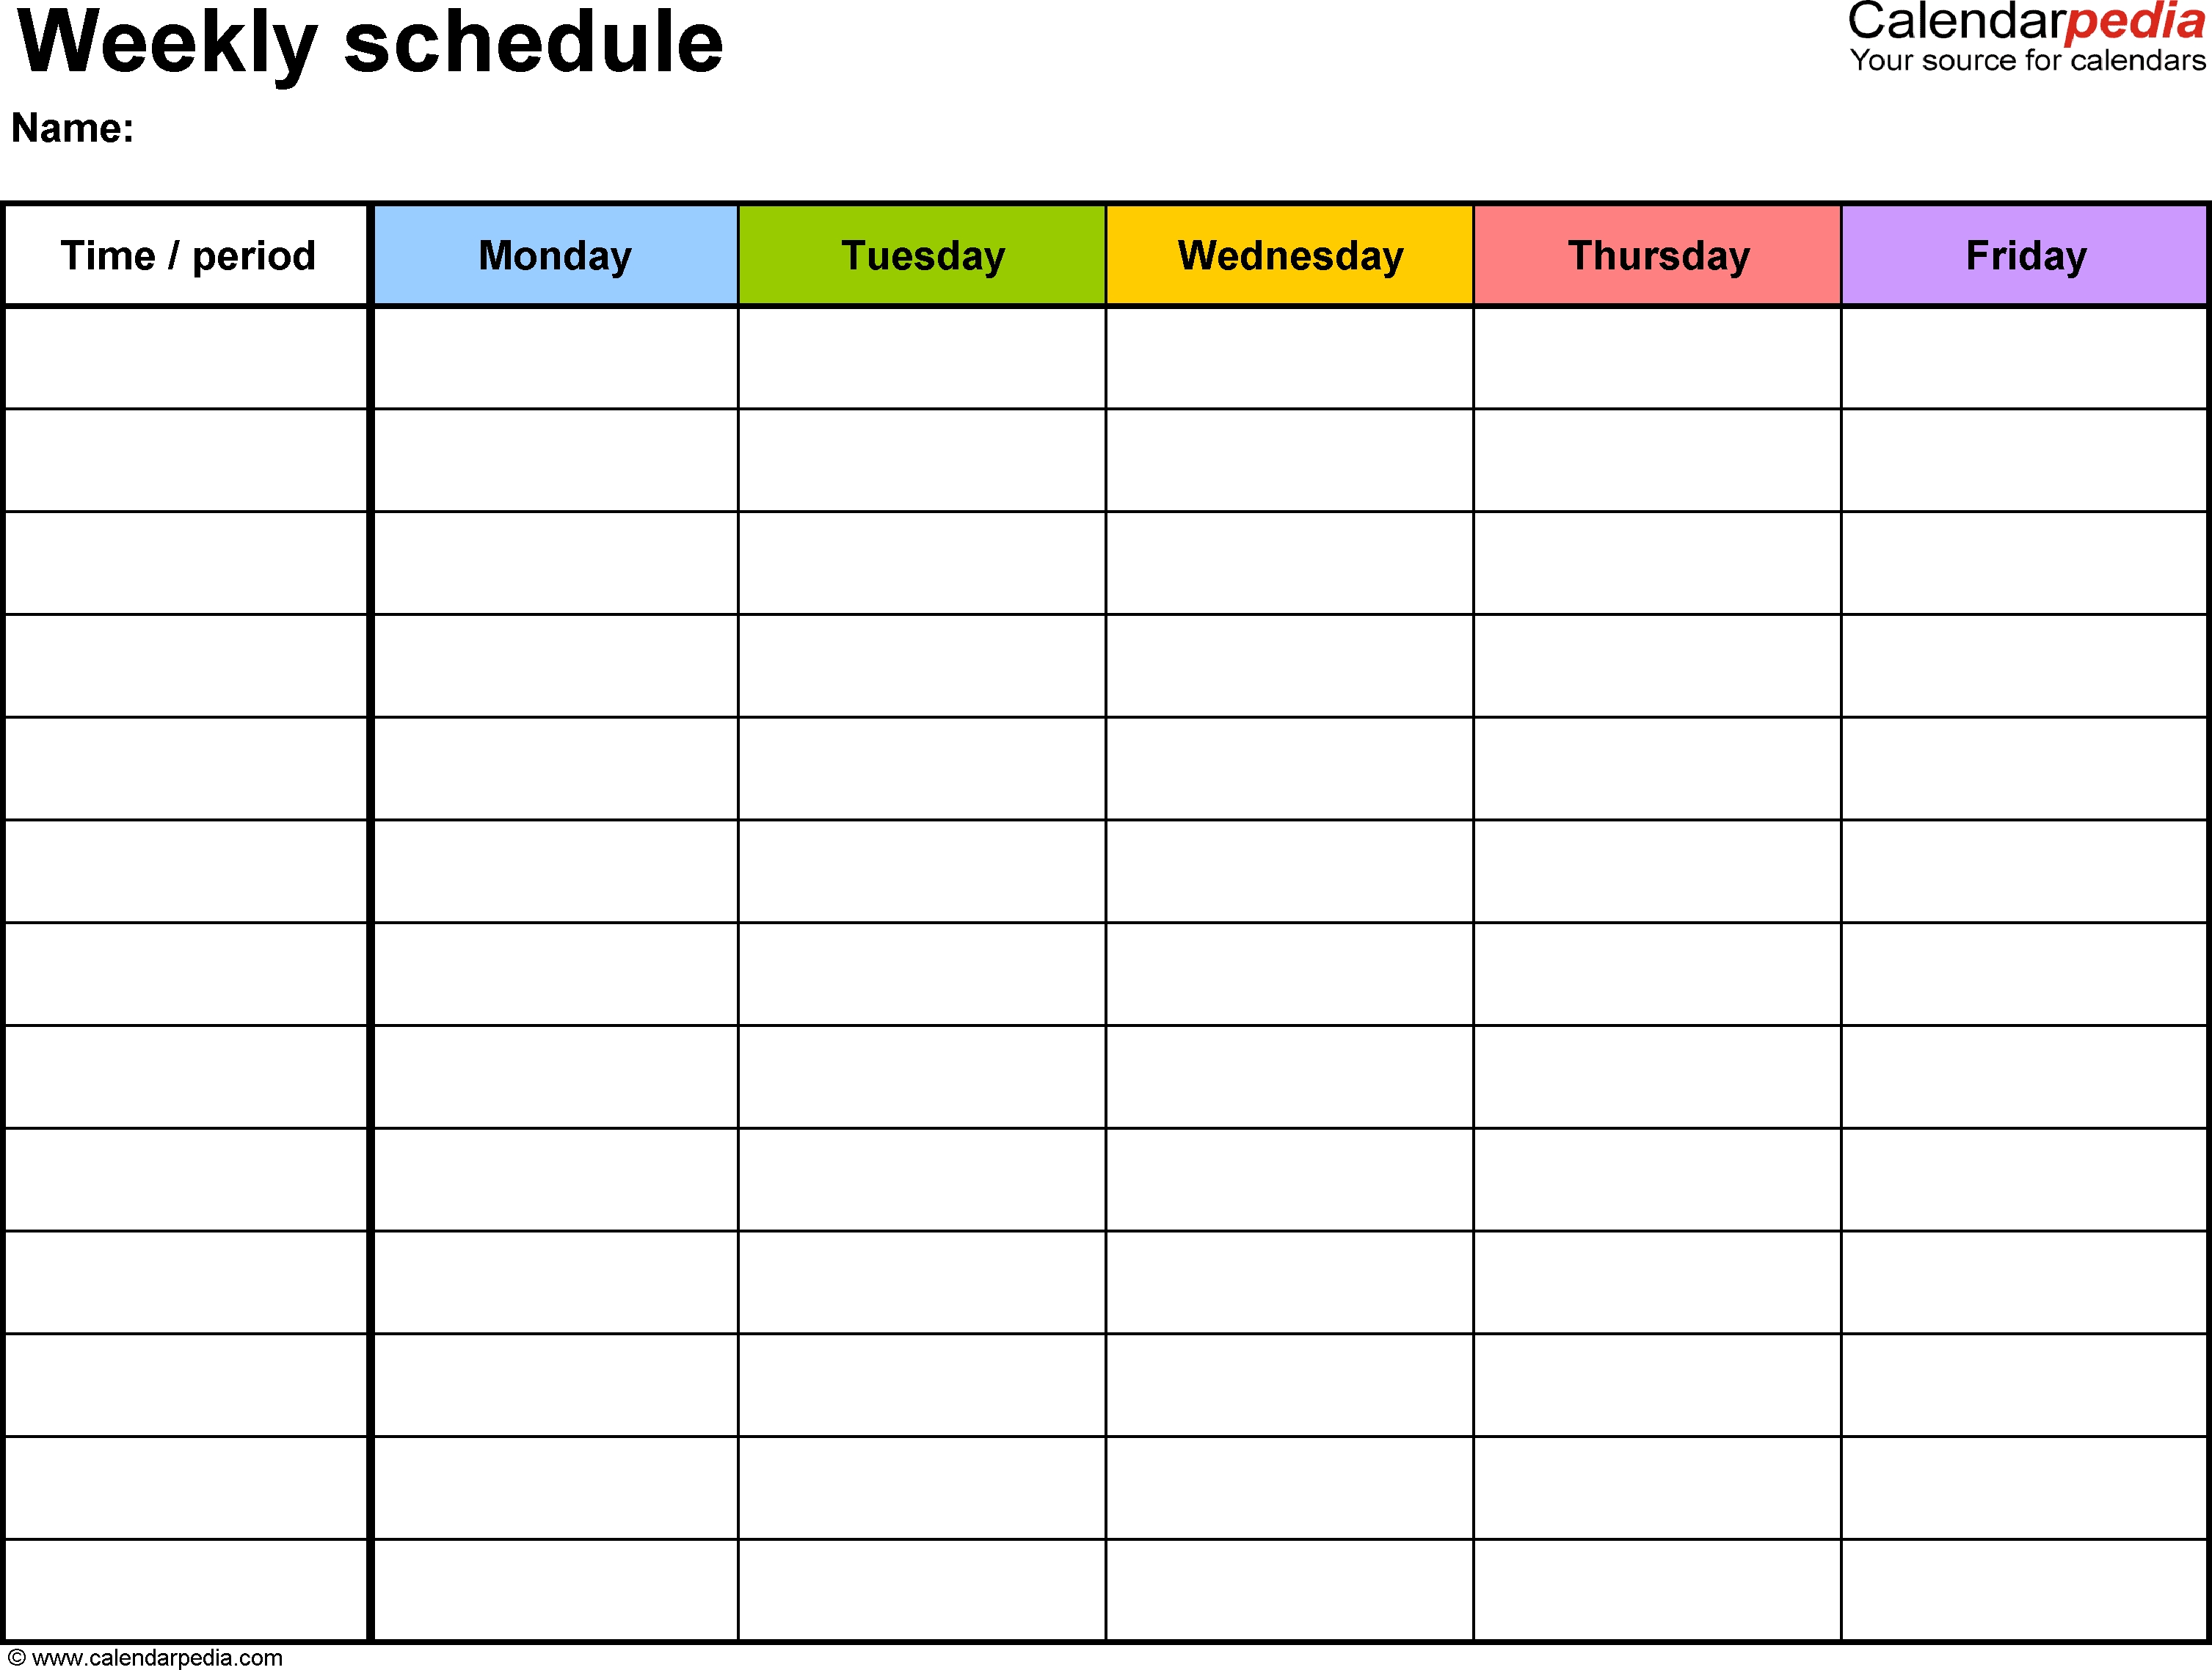 Free Weekly Schedule Templates For Word - 18 Templates  Printable Weekly Schedule Monday Through Friday